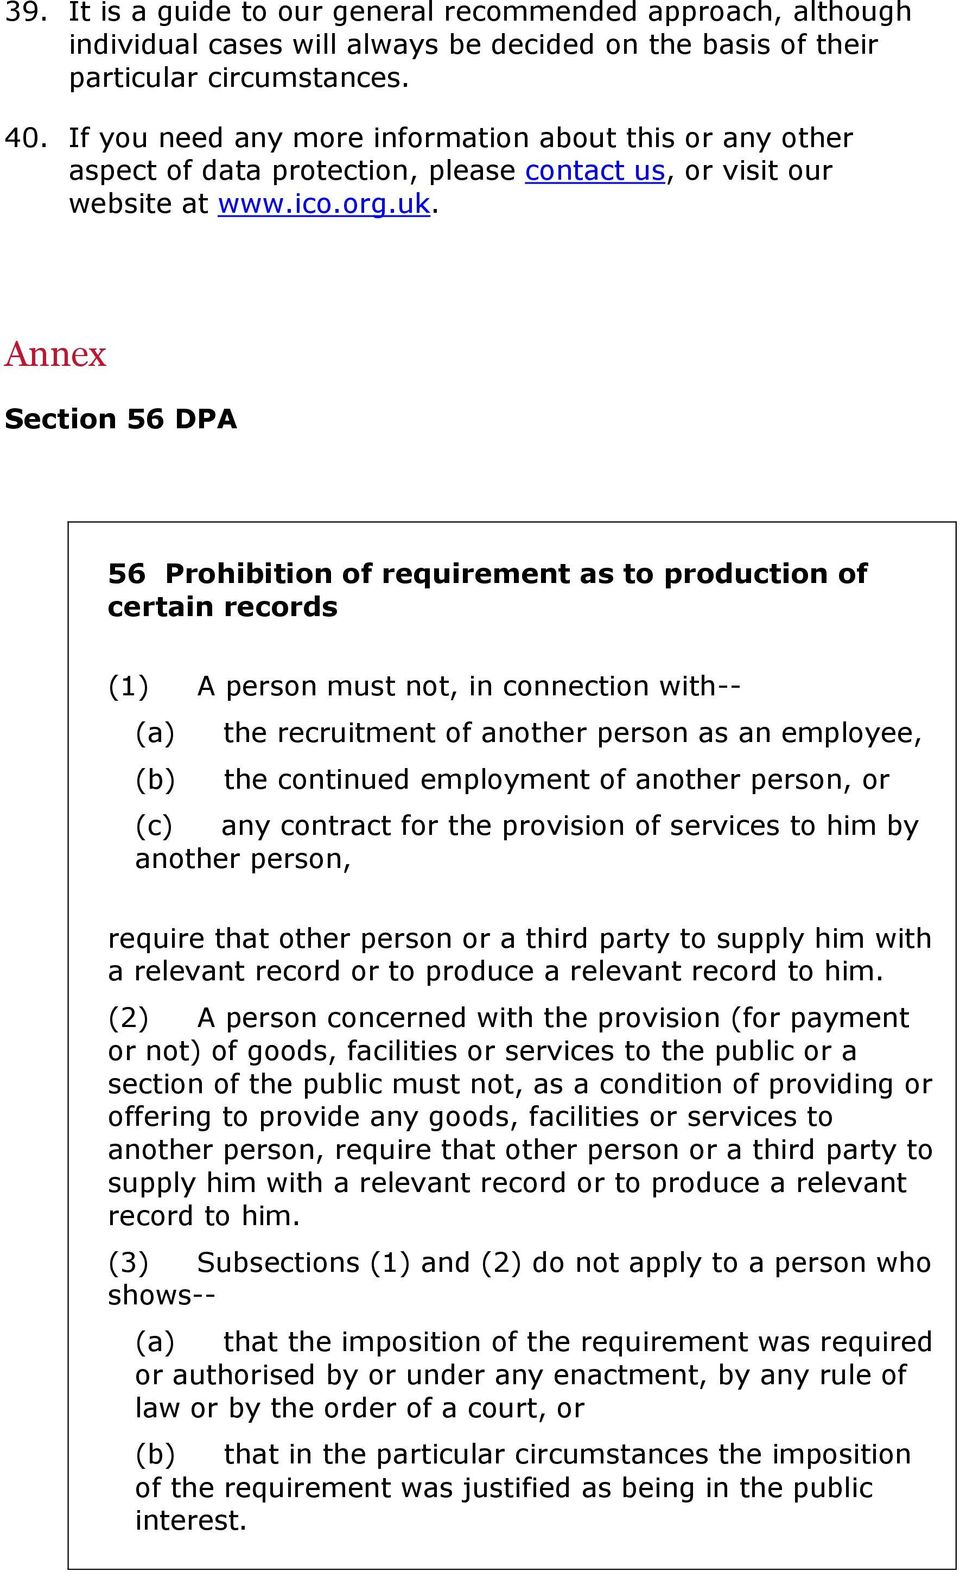 Annex Section 56 DPA 56 Prohibition of requirement as to production of certain records (1) A person must not, in connection with-- (a) the recruitment of another person as an employee, (b) the